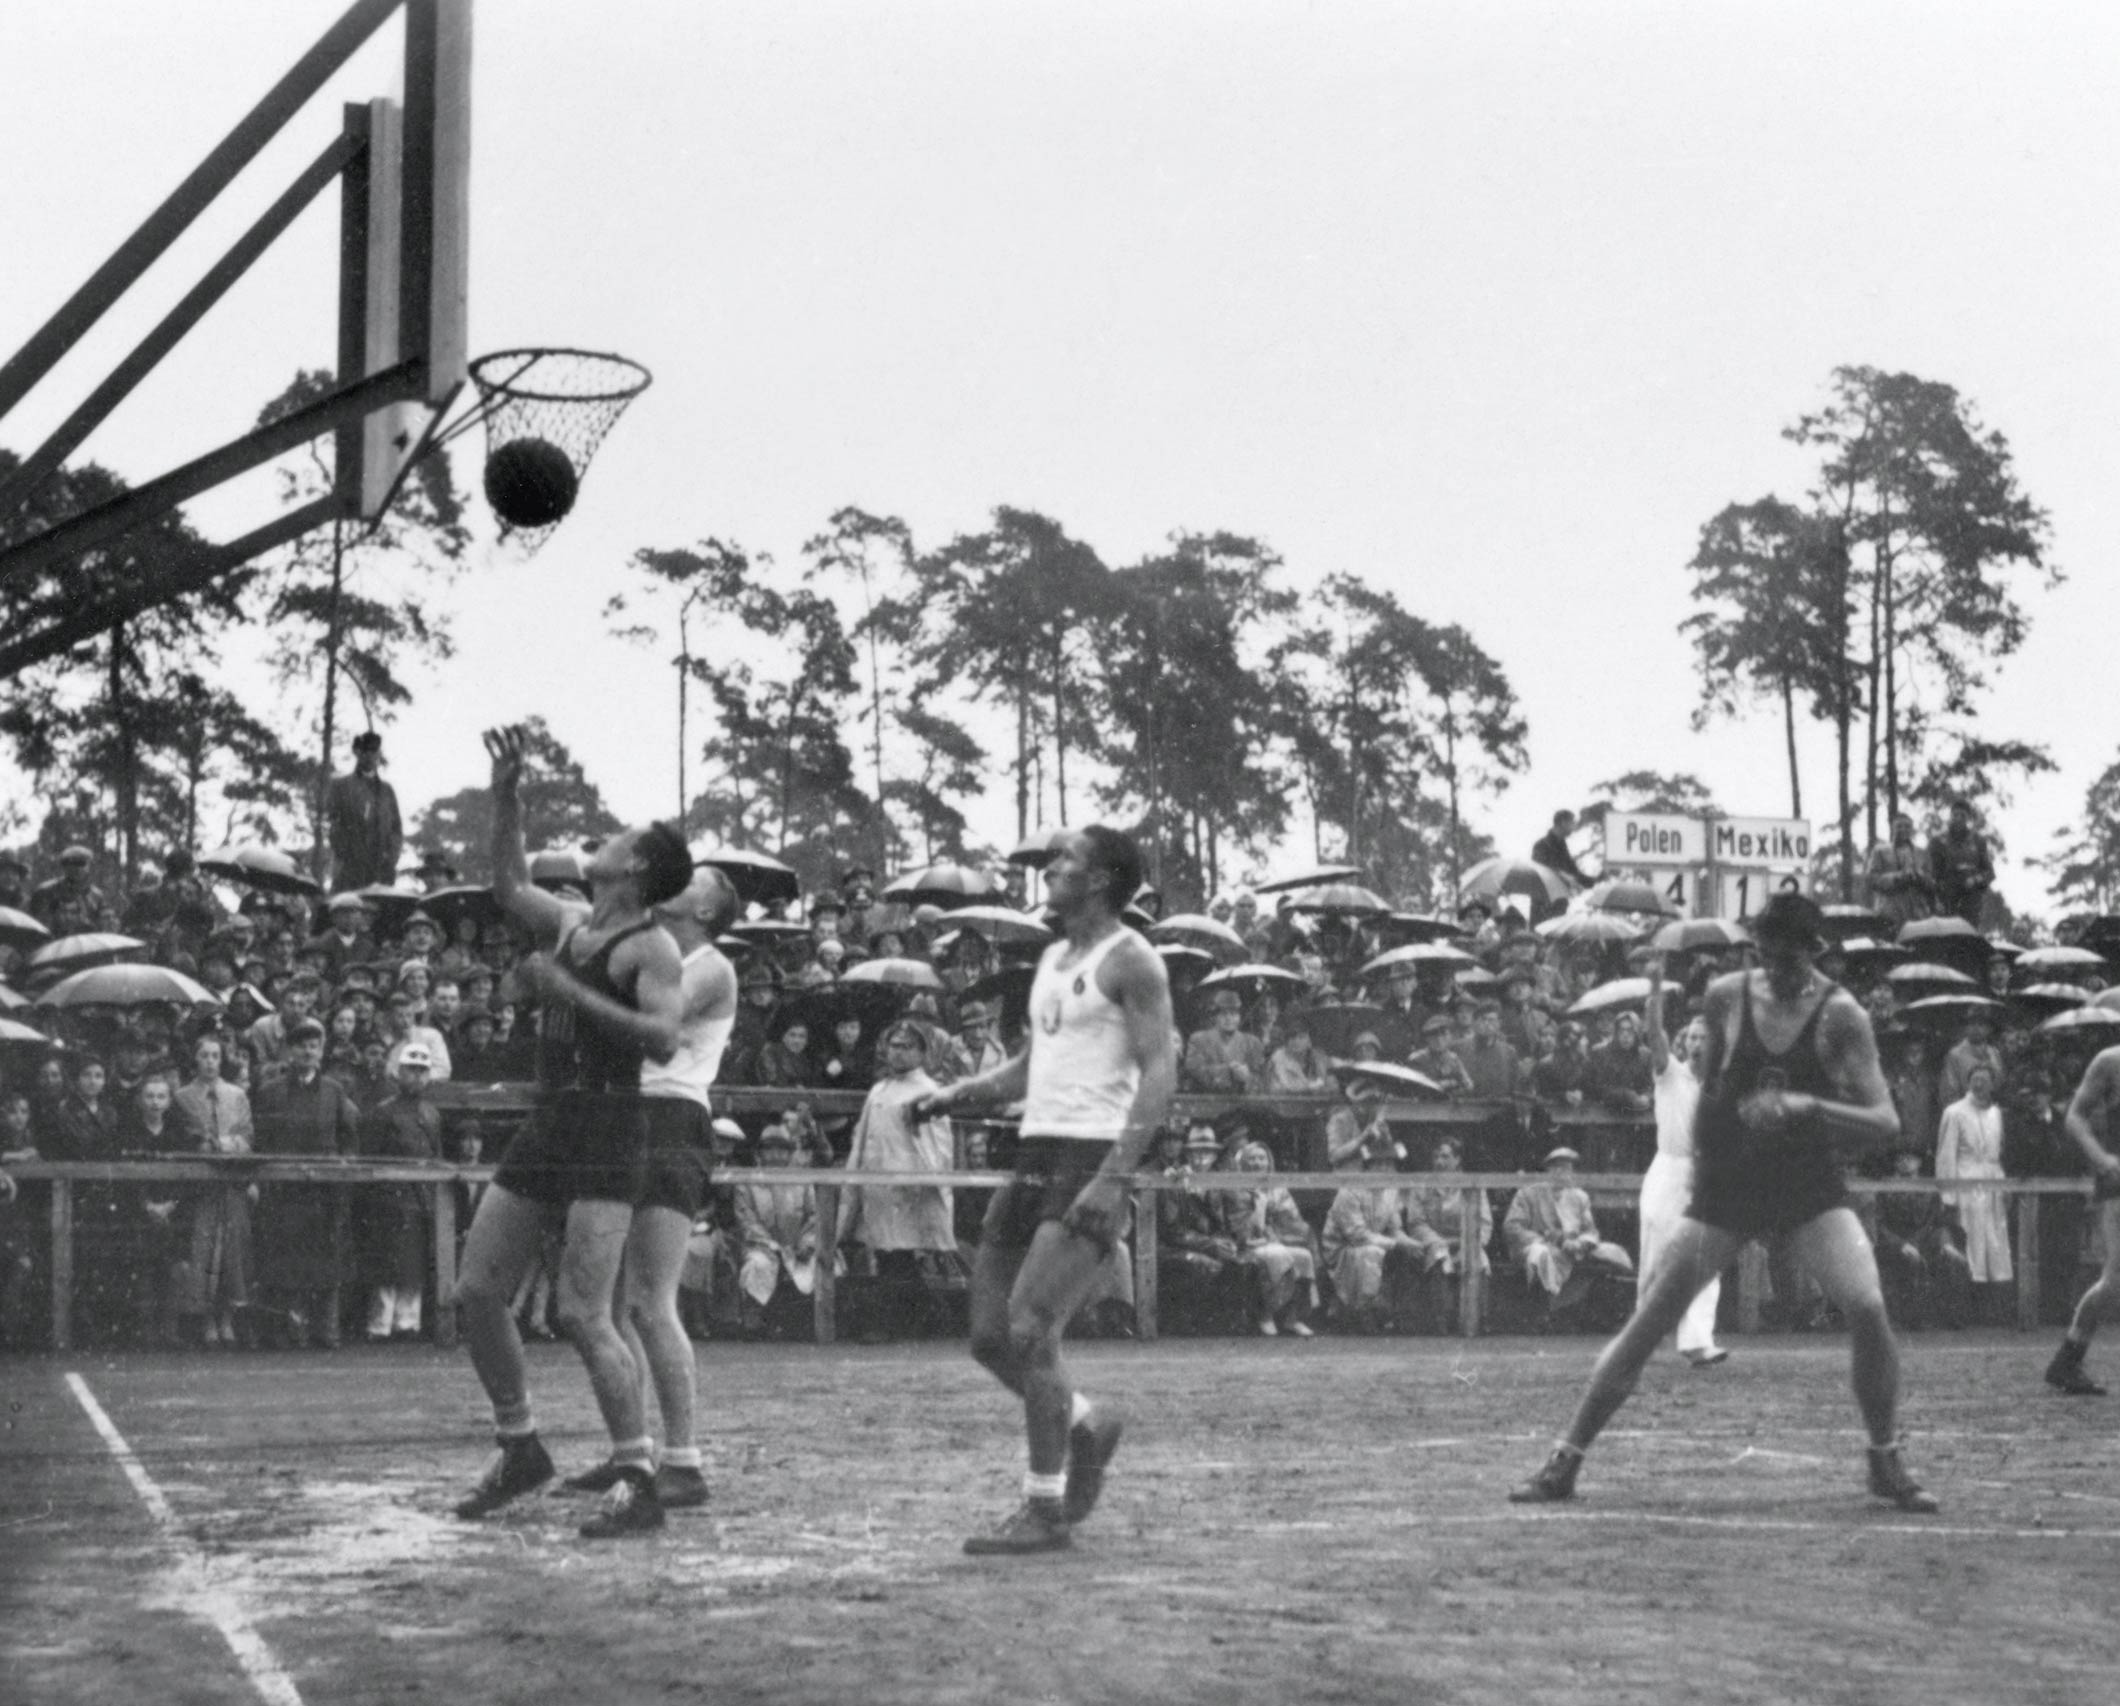 Berlin 1936 Basketball